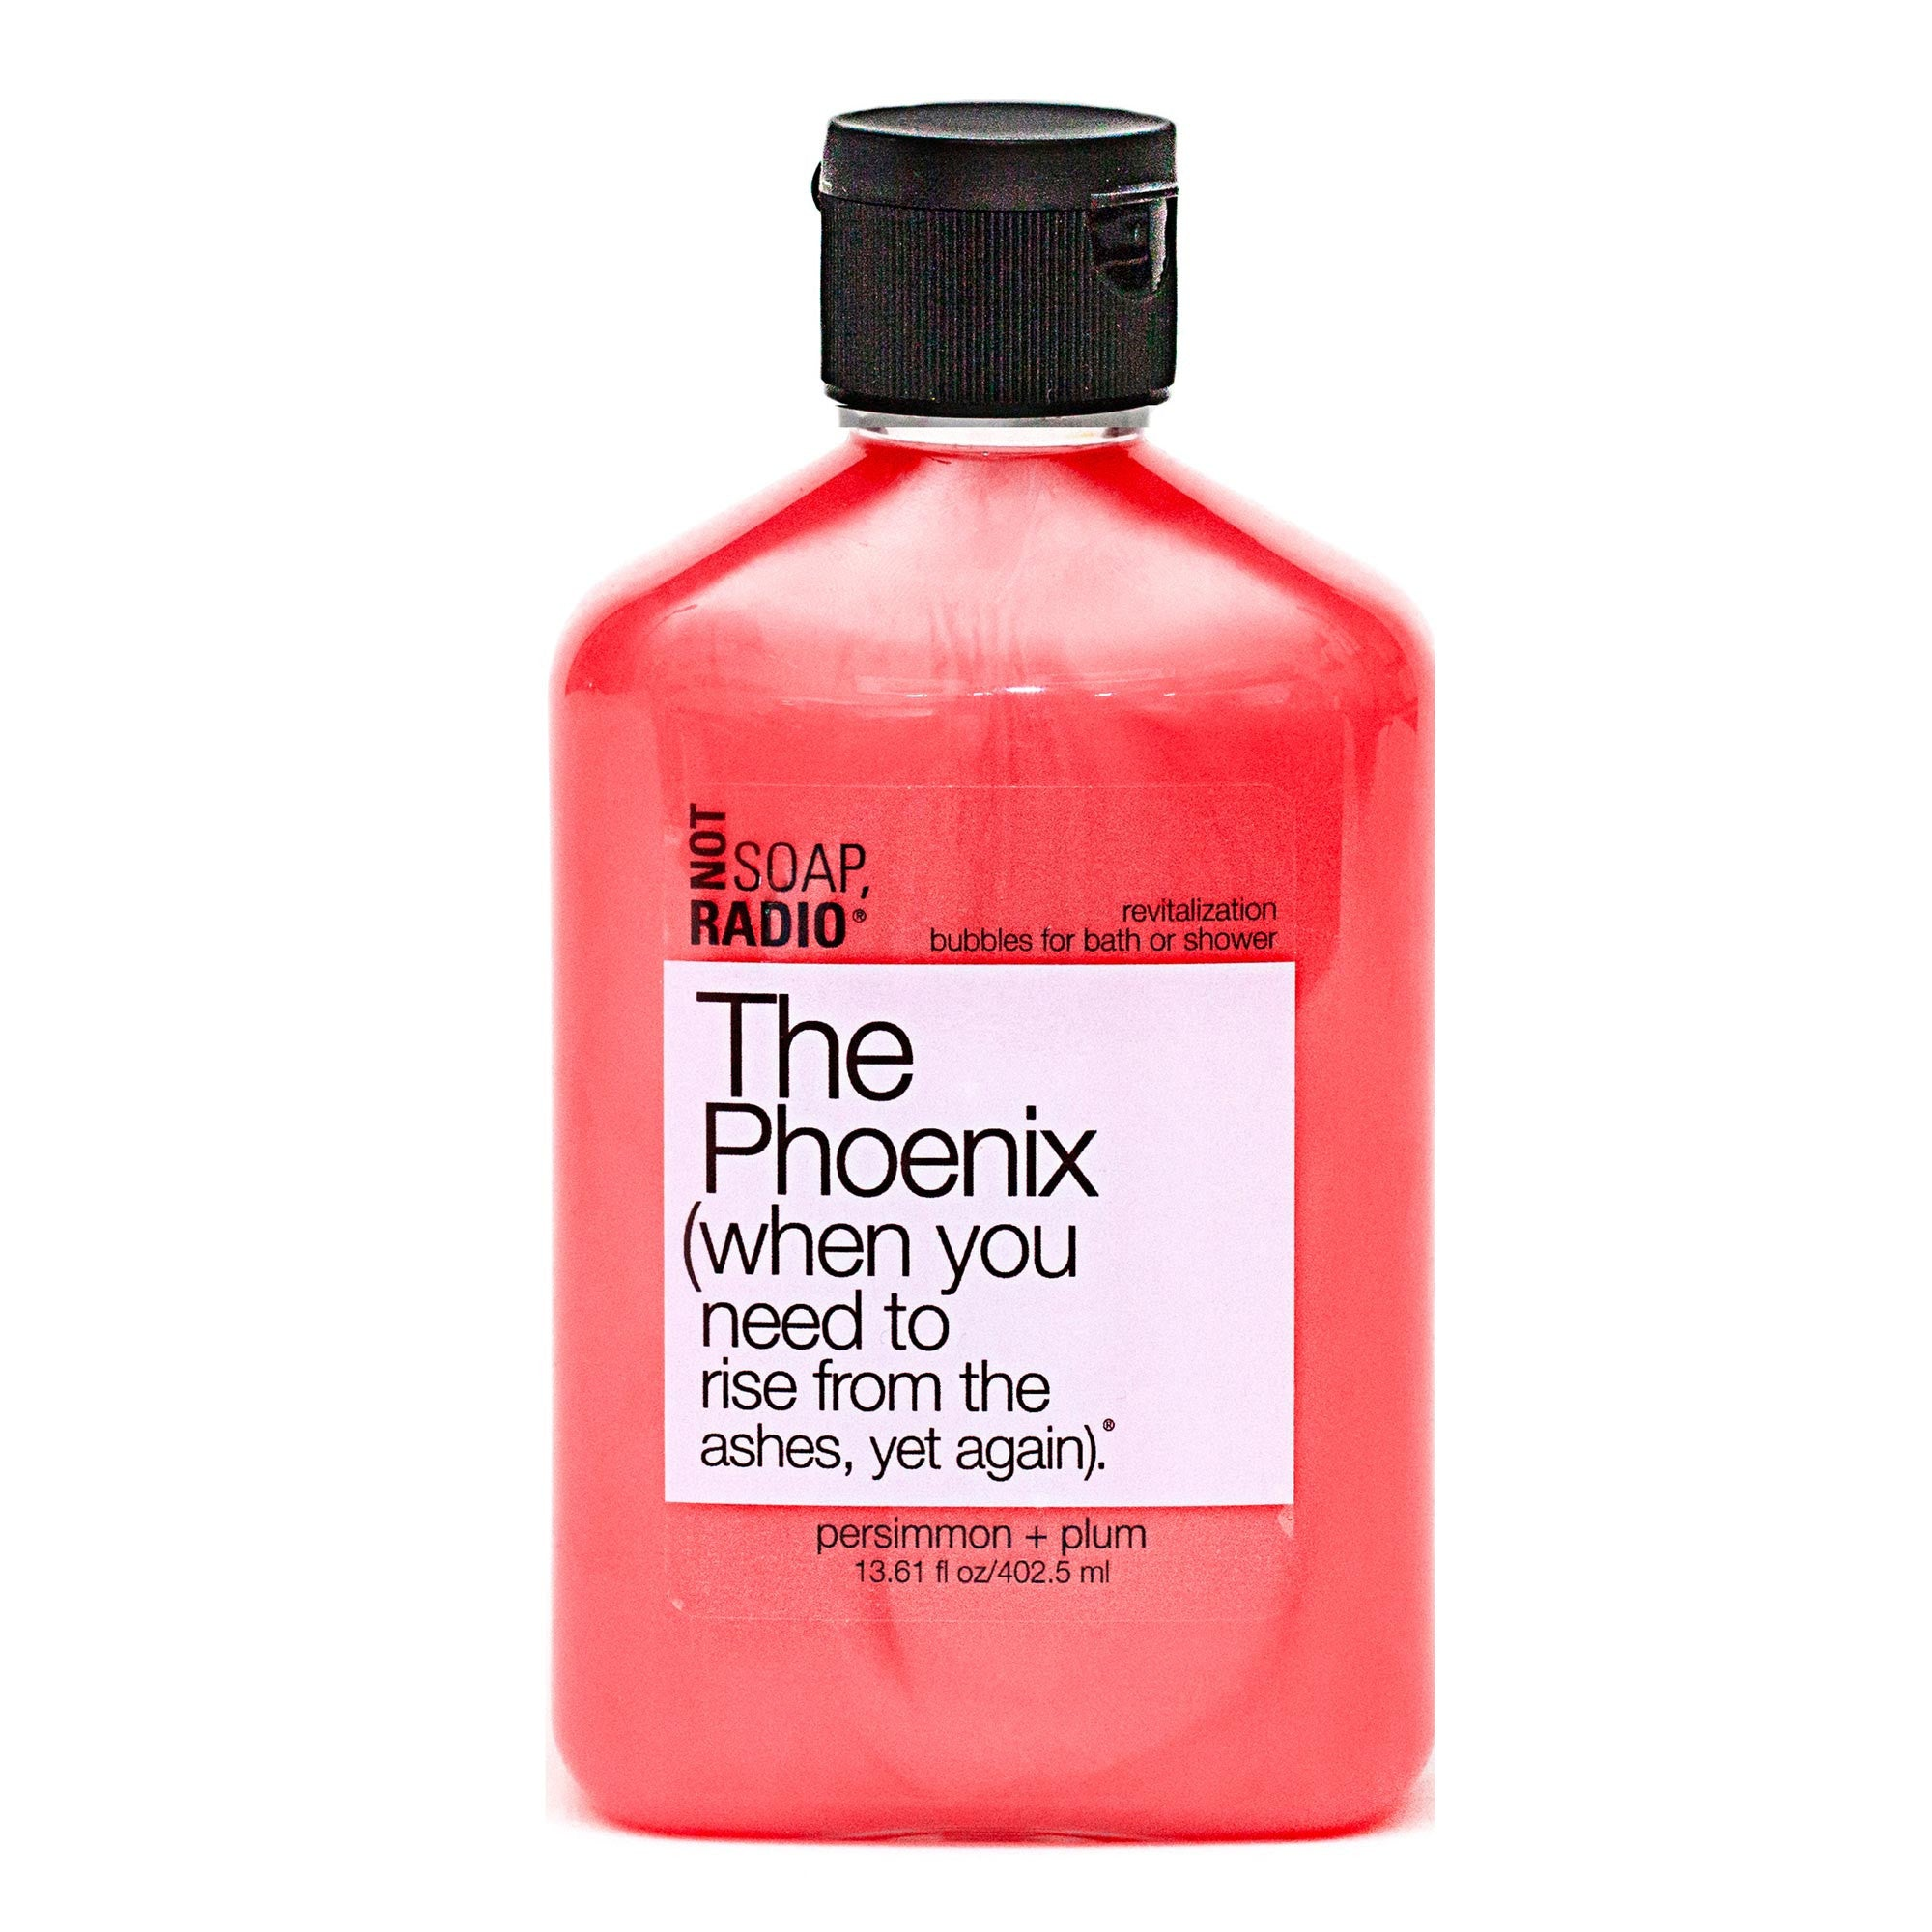 The Phoenix (when you need to rise from the ashes, yet again). - Not Soap Radio Bubbles for bath/shower